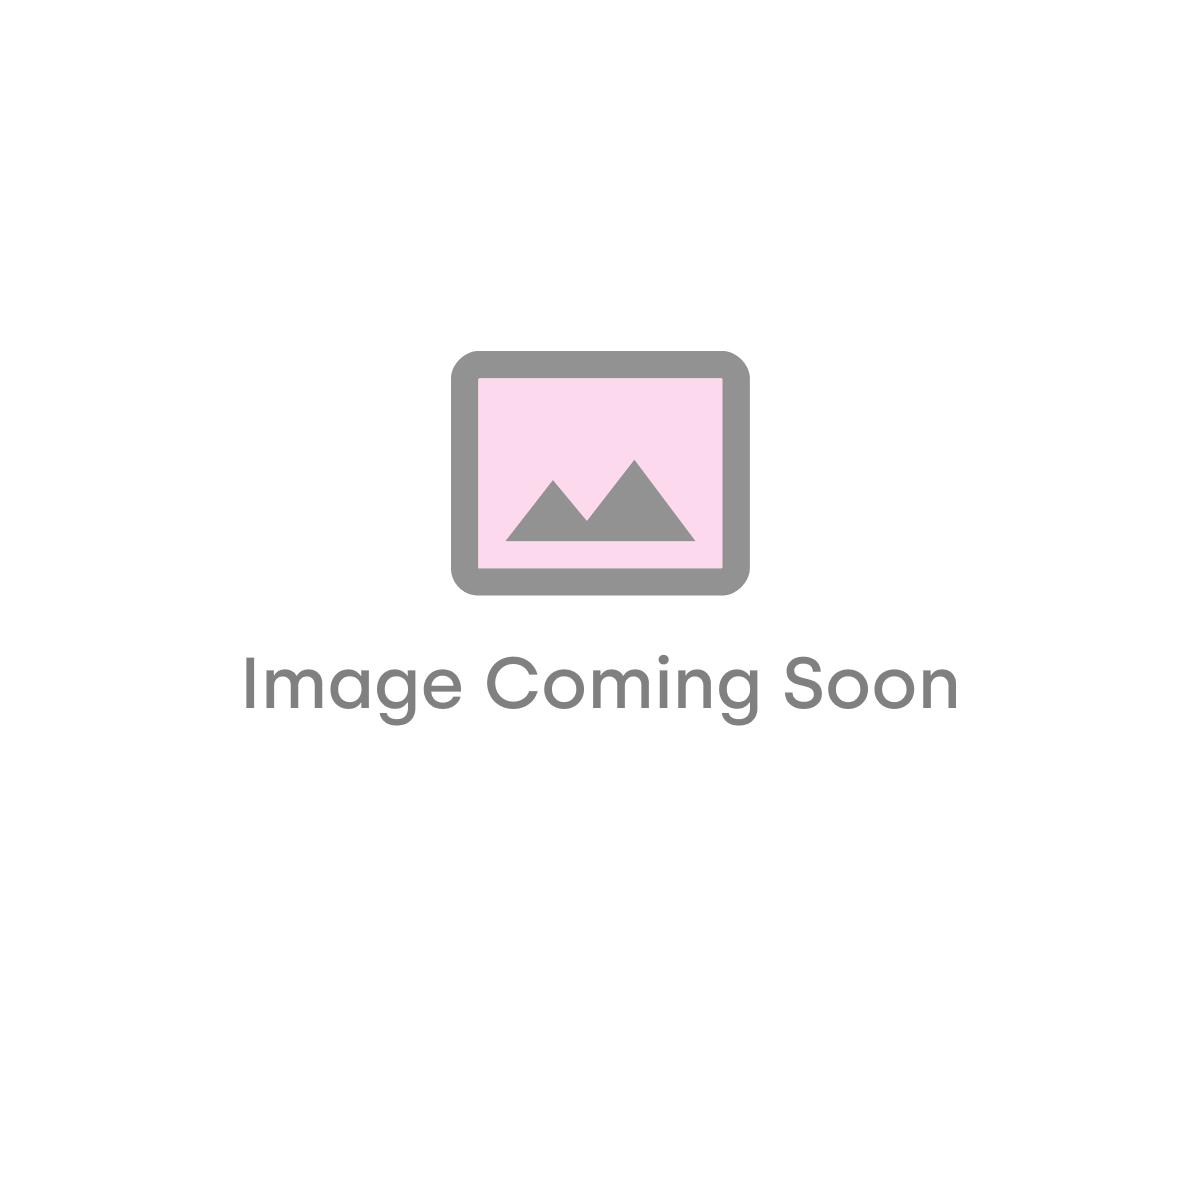 Minuto 400mm Wall Mounted Cloakroom Vanity Unit & Basin - Hacienda Black (19252)